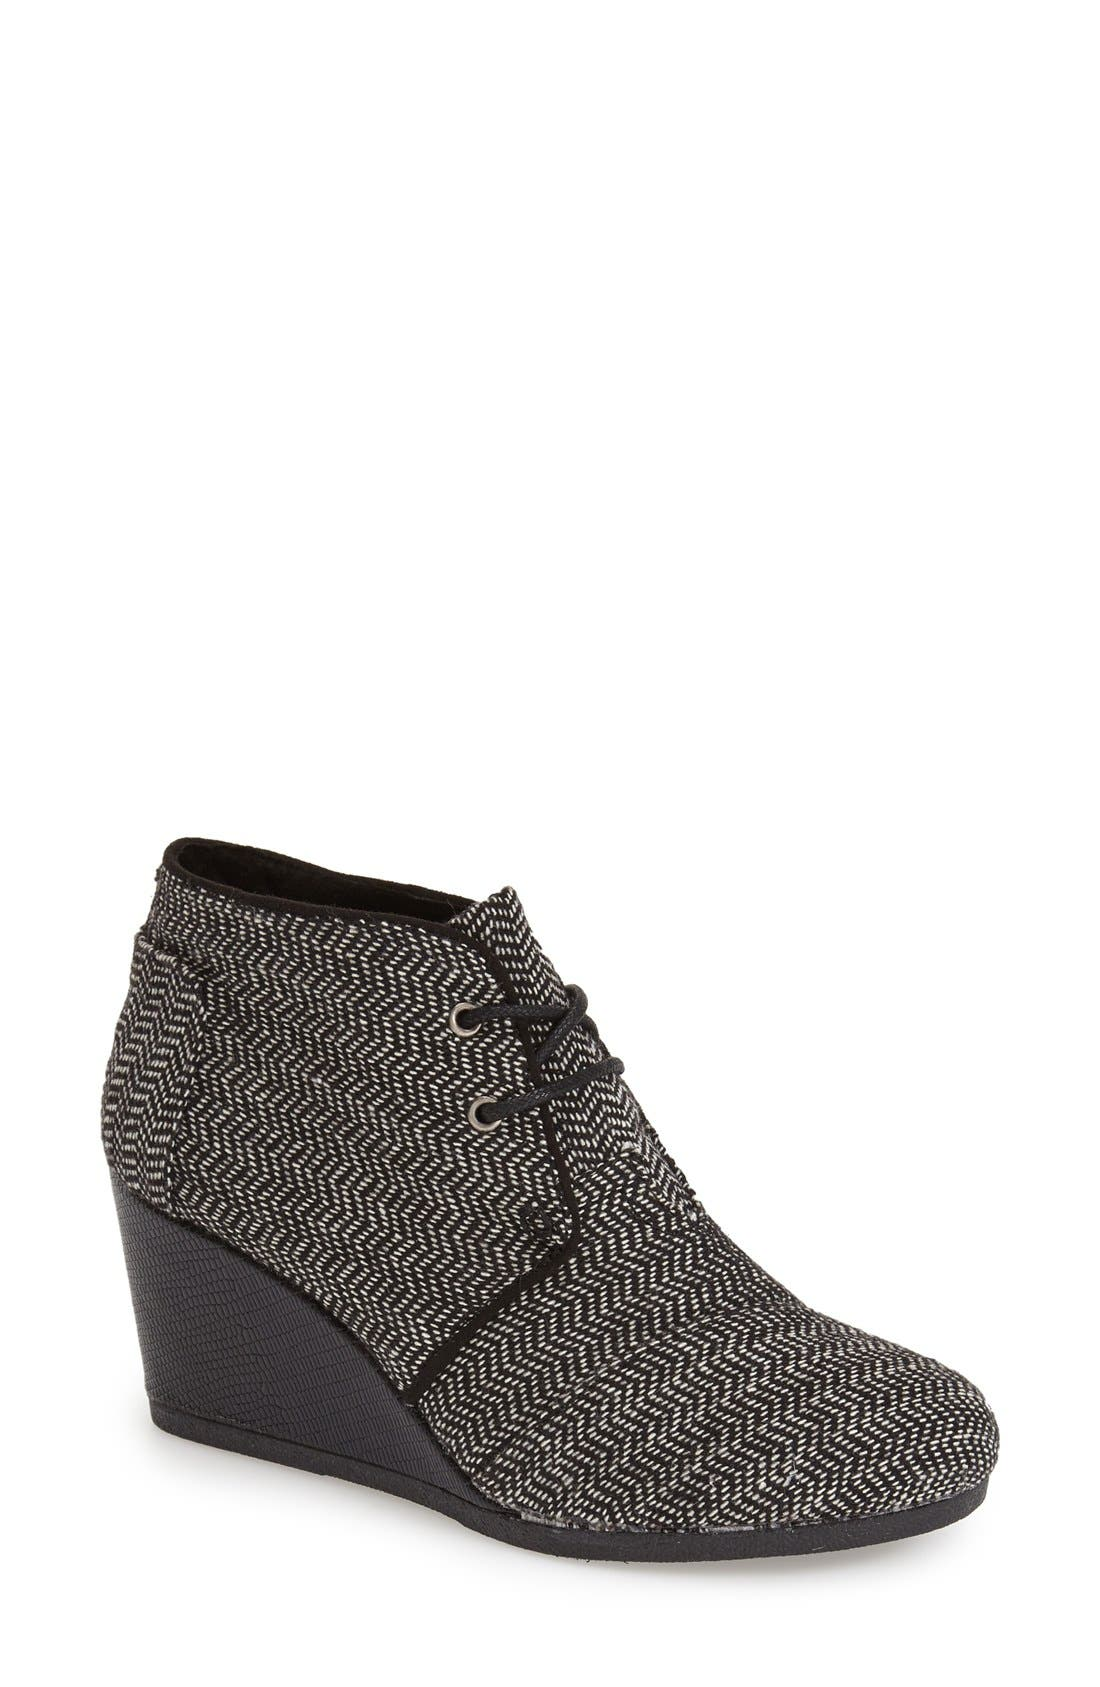 Alternate Image 1 Selected - TOMS 'Desert' Wedge Bootie (Women)